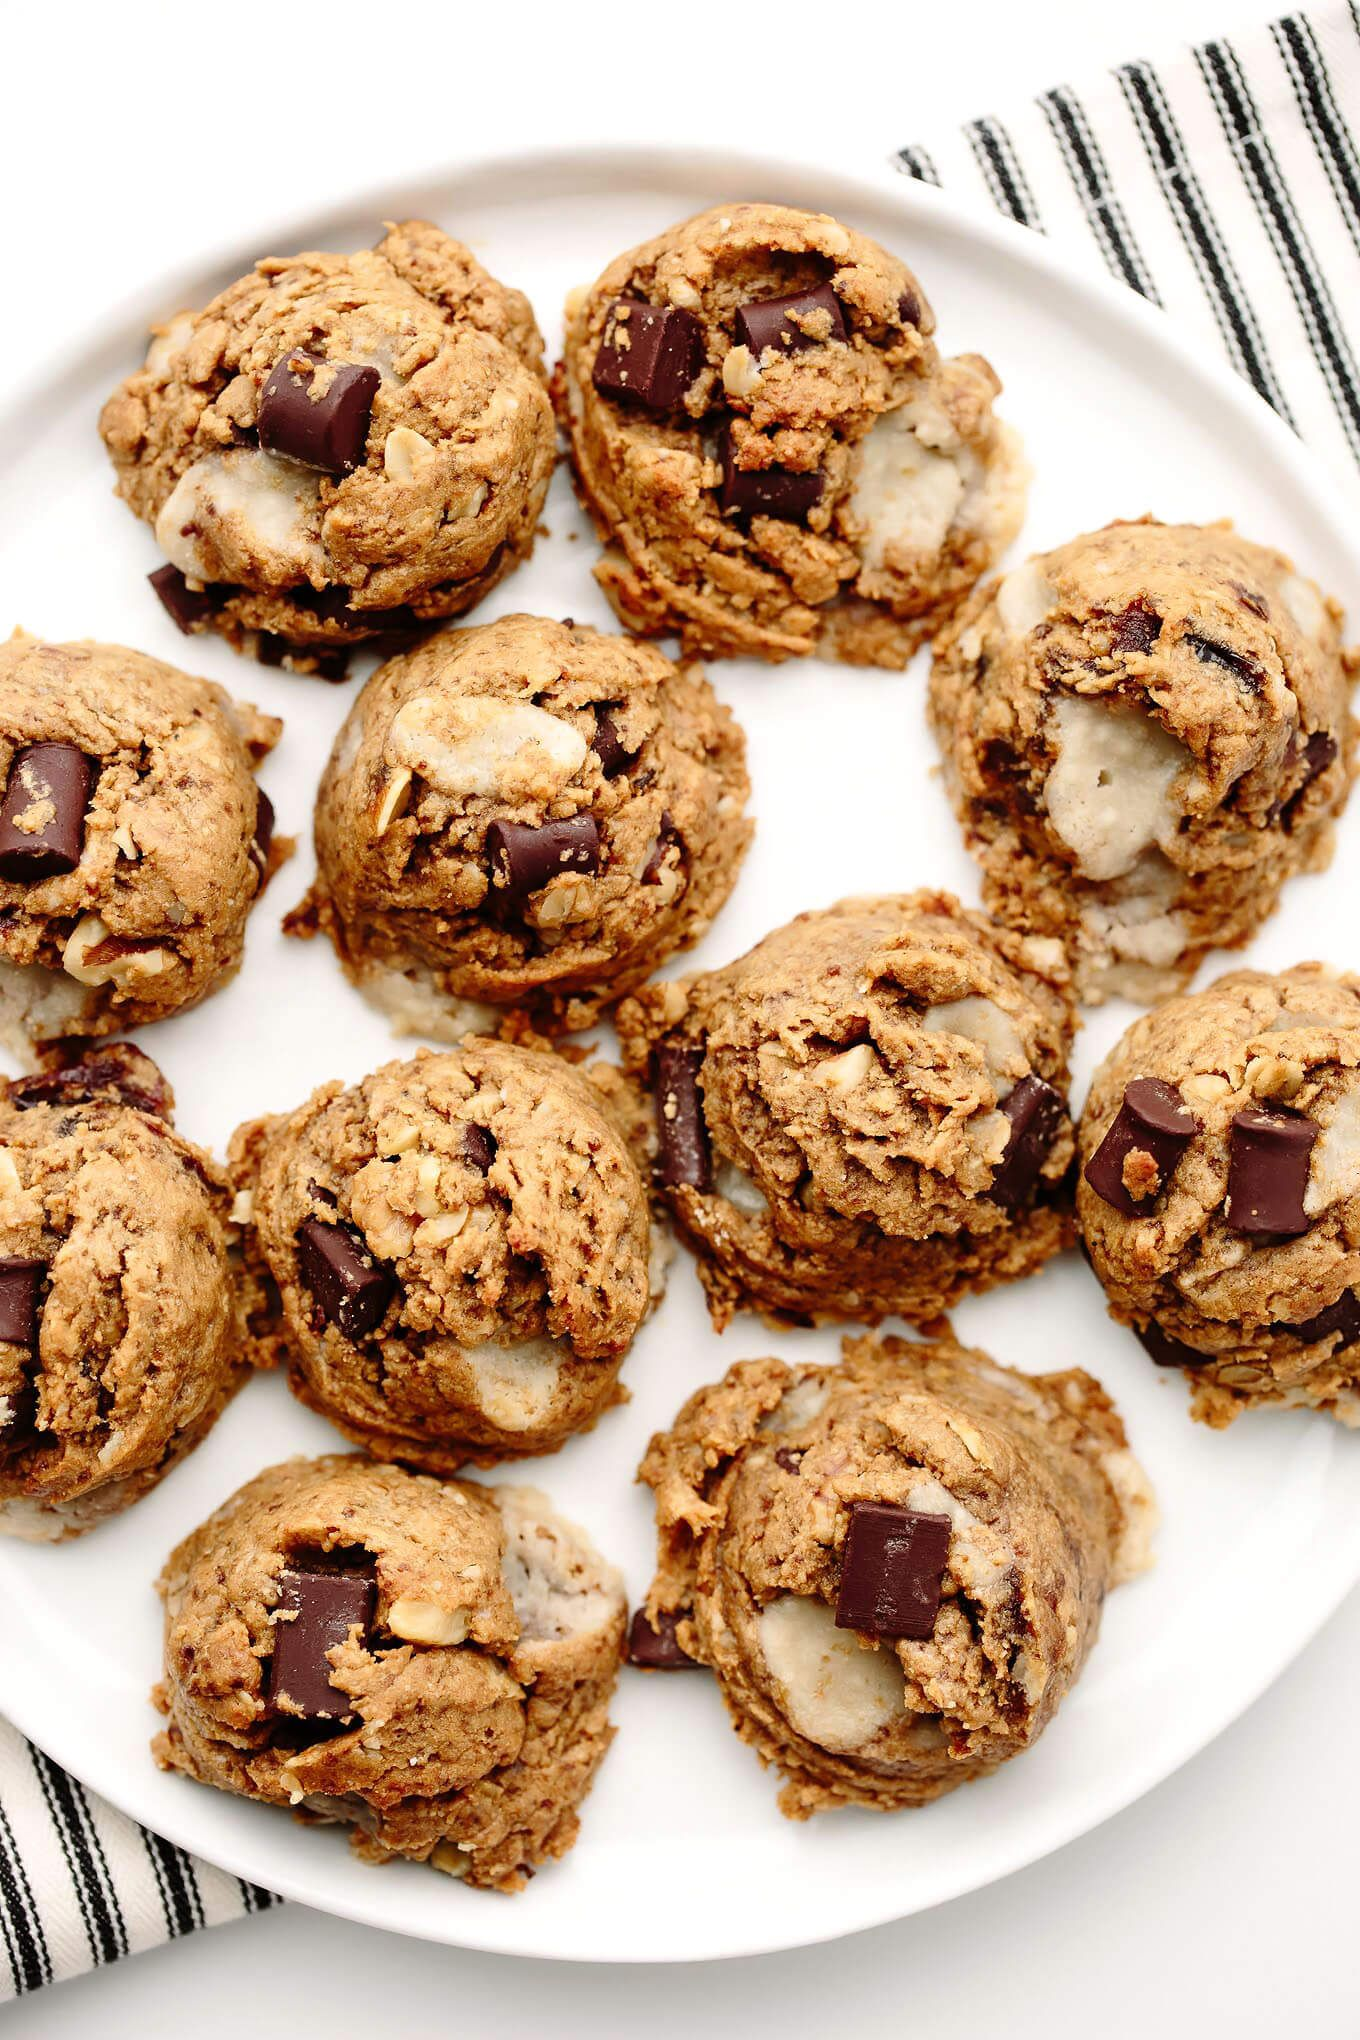 Photo of Peanut Butter Kitchen Sink Cookies | Vegan, Gluten-Free